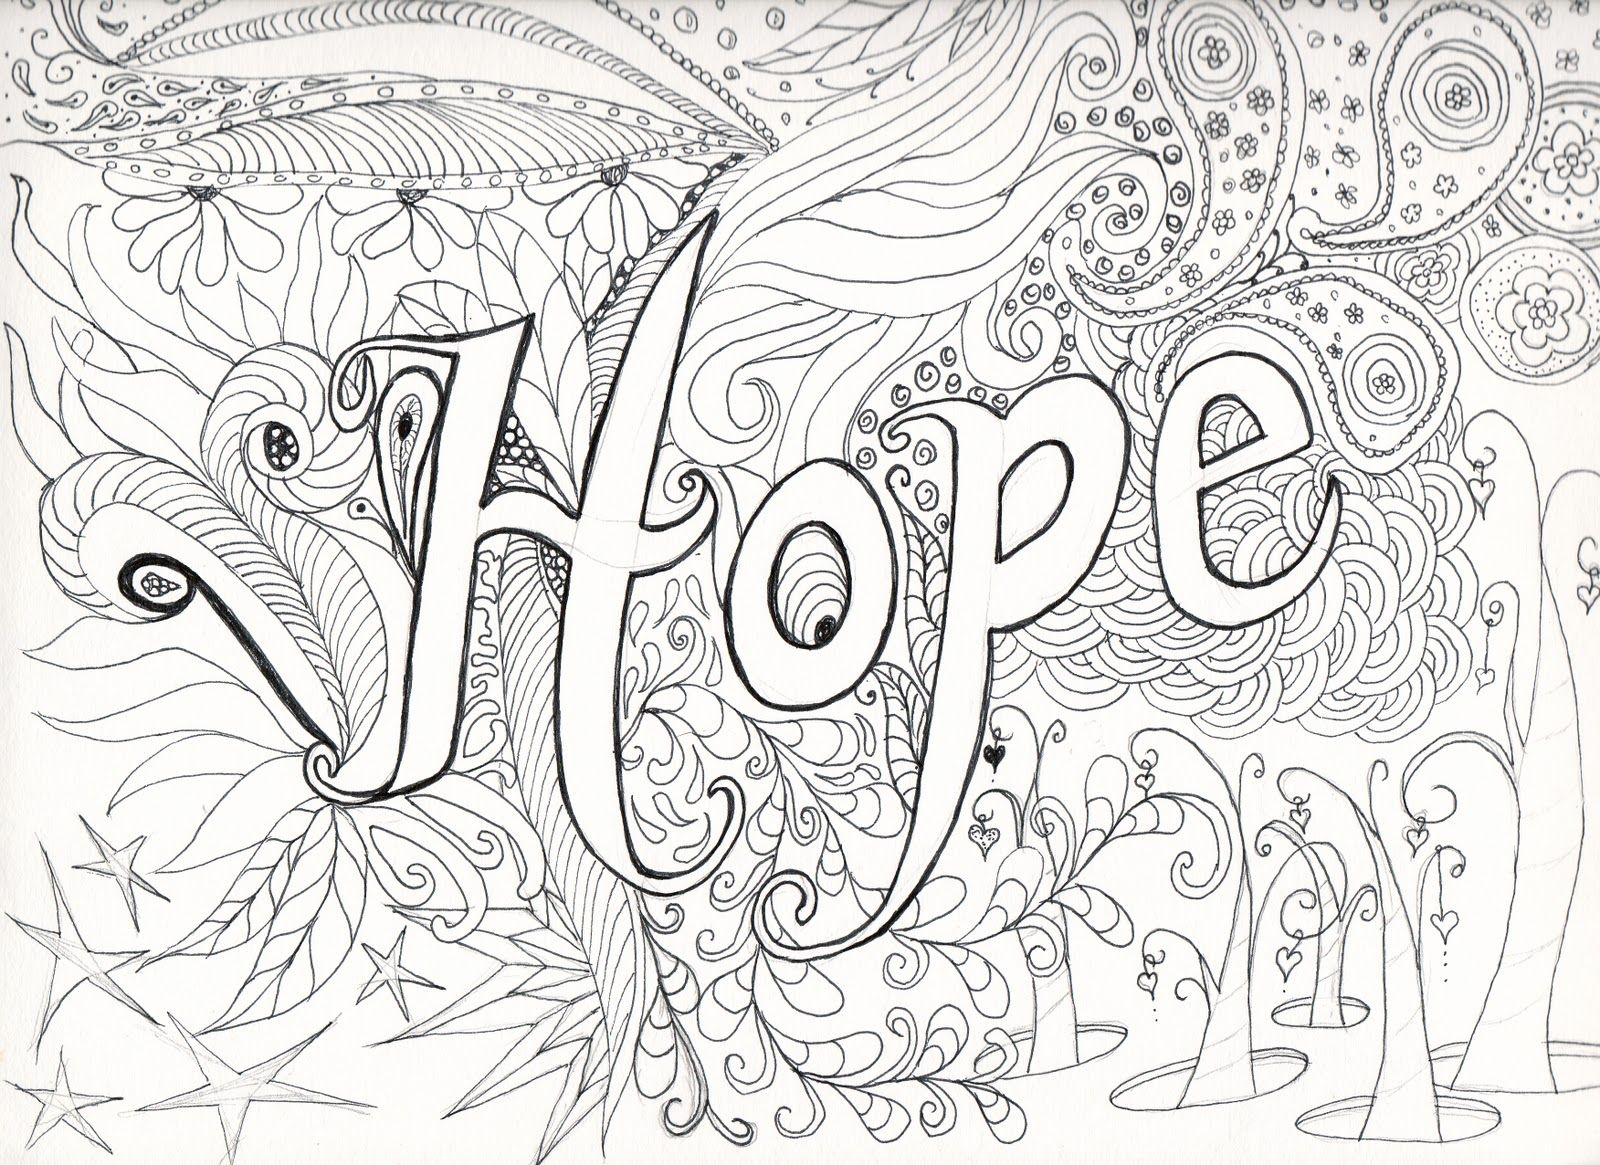 Hard Coloring Pages - Free Large Images   Coloring Pages   Pinterest - Free Printable Hard Coloring Pages For Adults